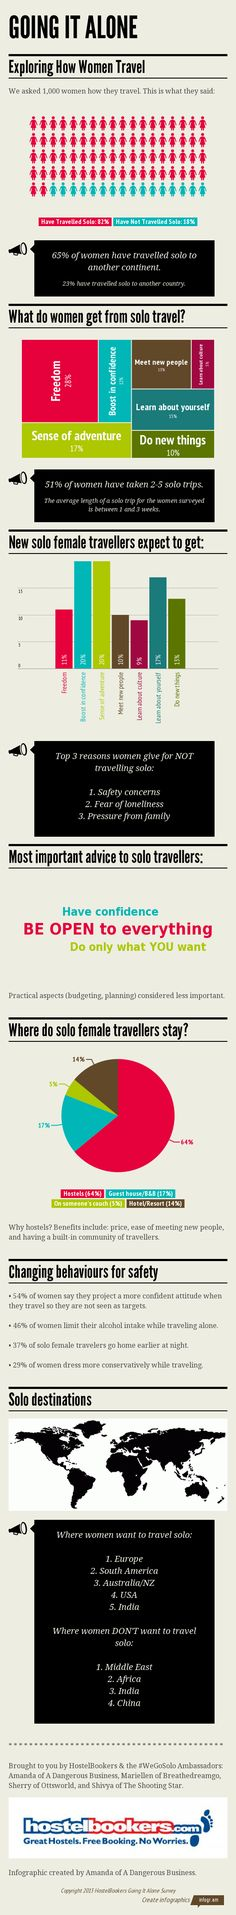 GOING IT ALONE Infographic from thhe #WeGoSolo Survey of 1000+ women on why they travel.